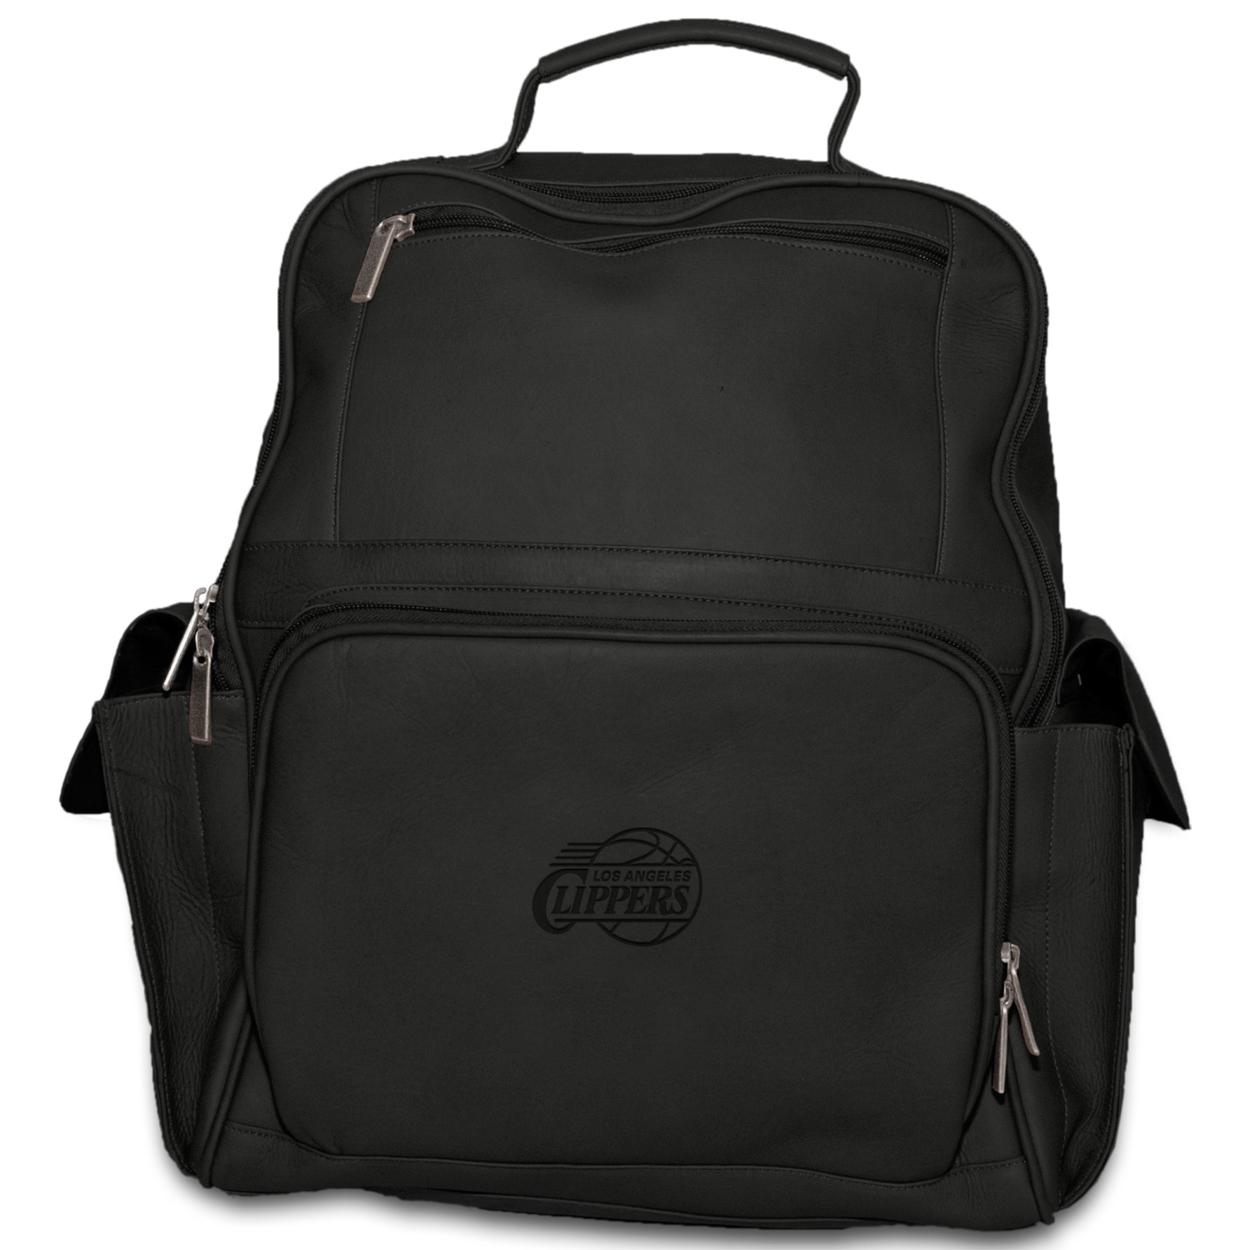 Pangea Black Leather Large Computer Backpack - Los Angeles Clippers Los Angeles Clippers PANGBKTLACBKB